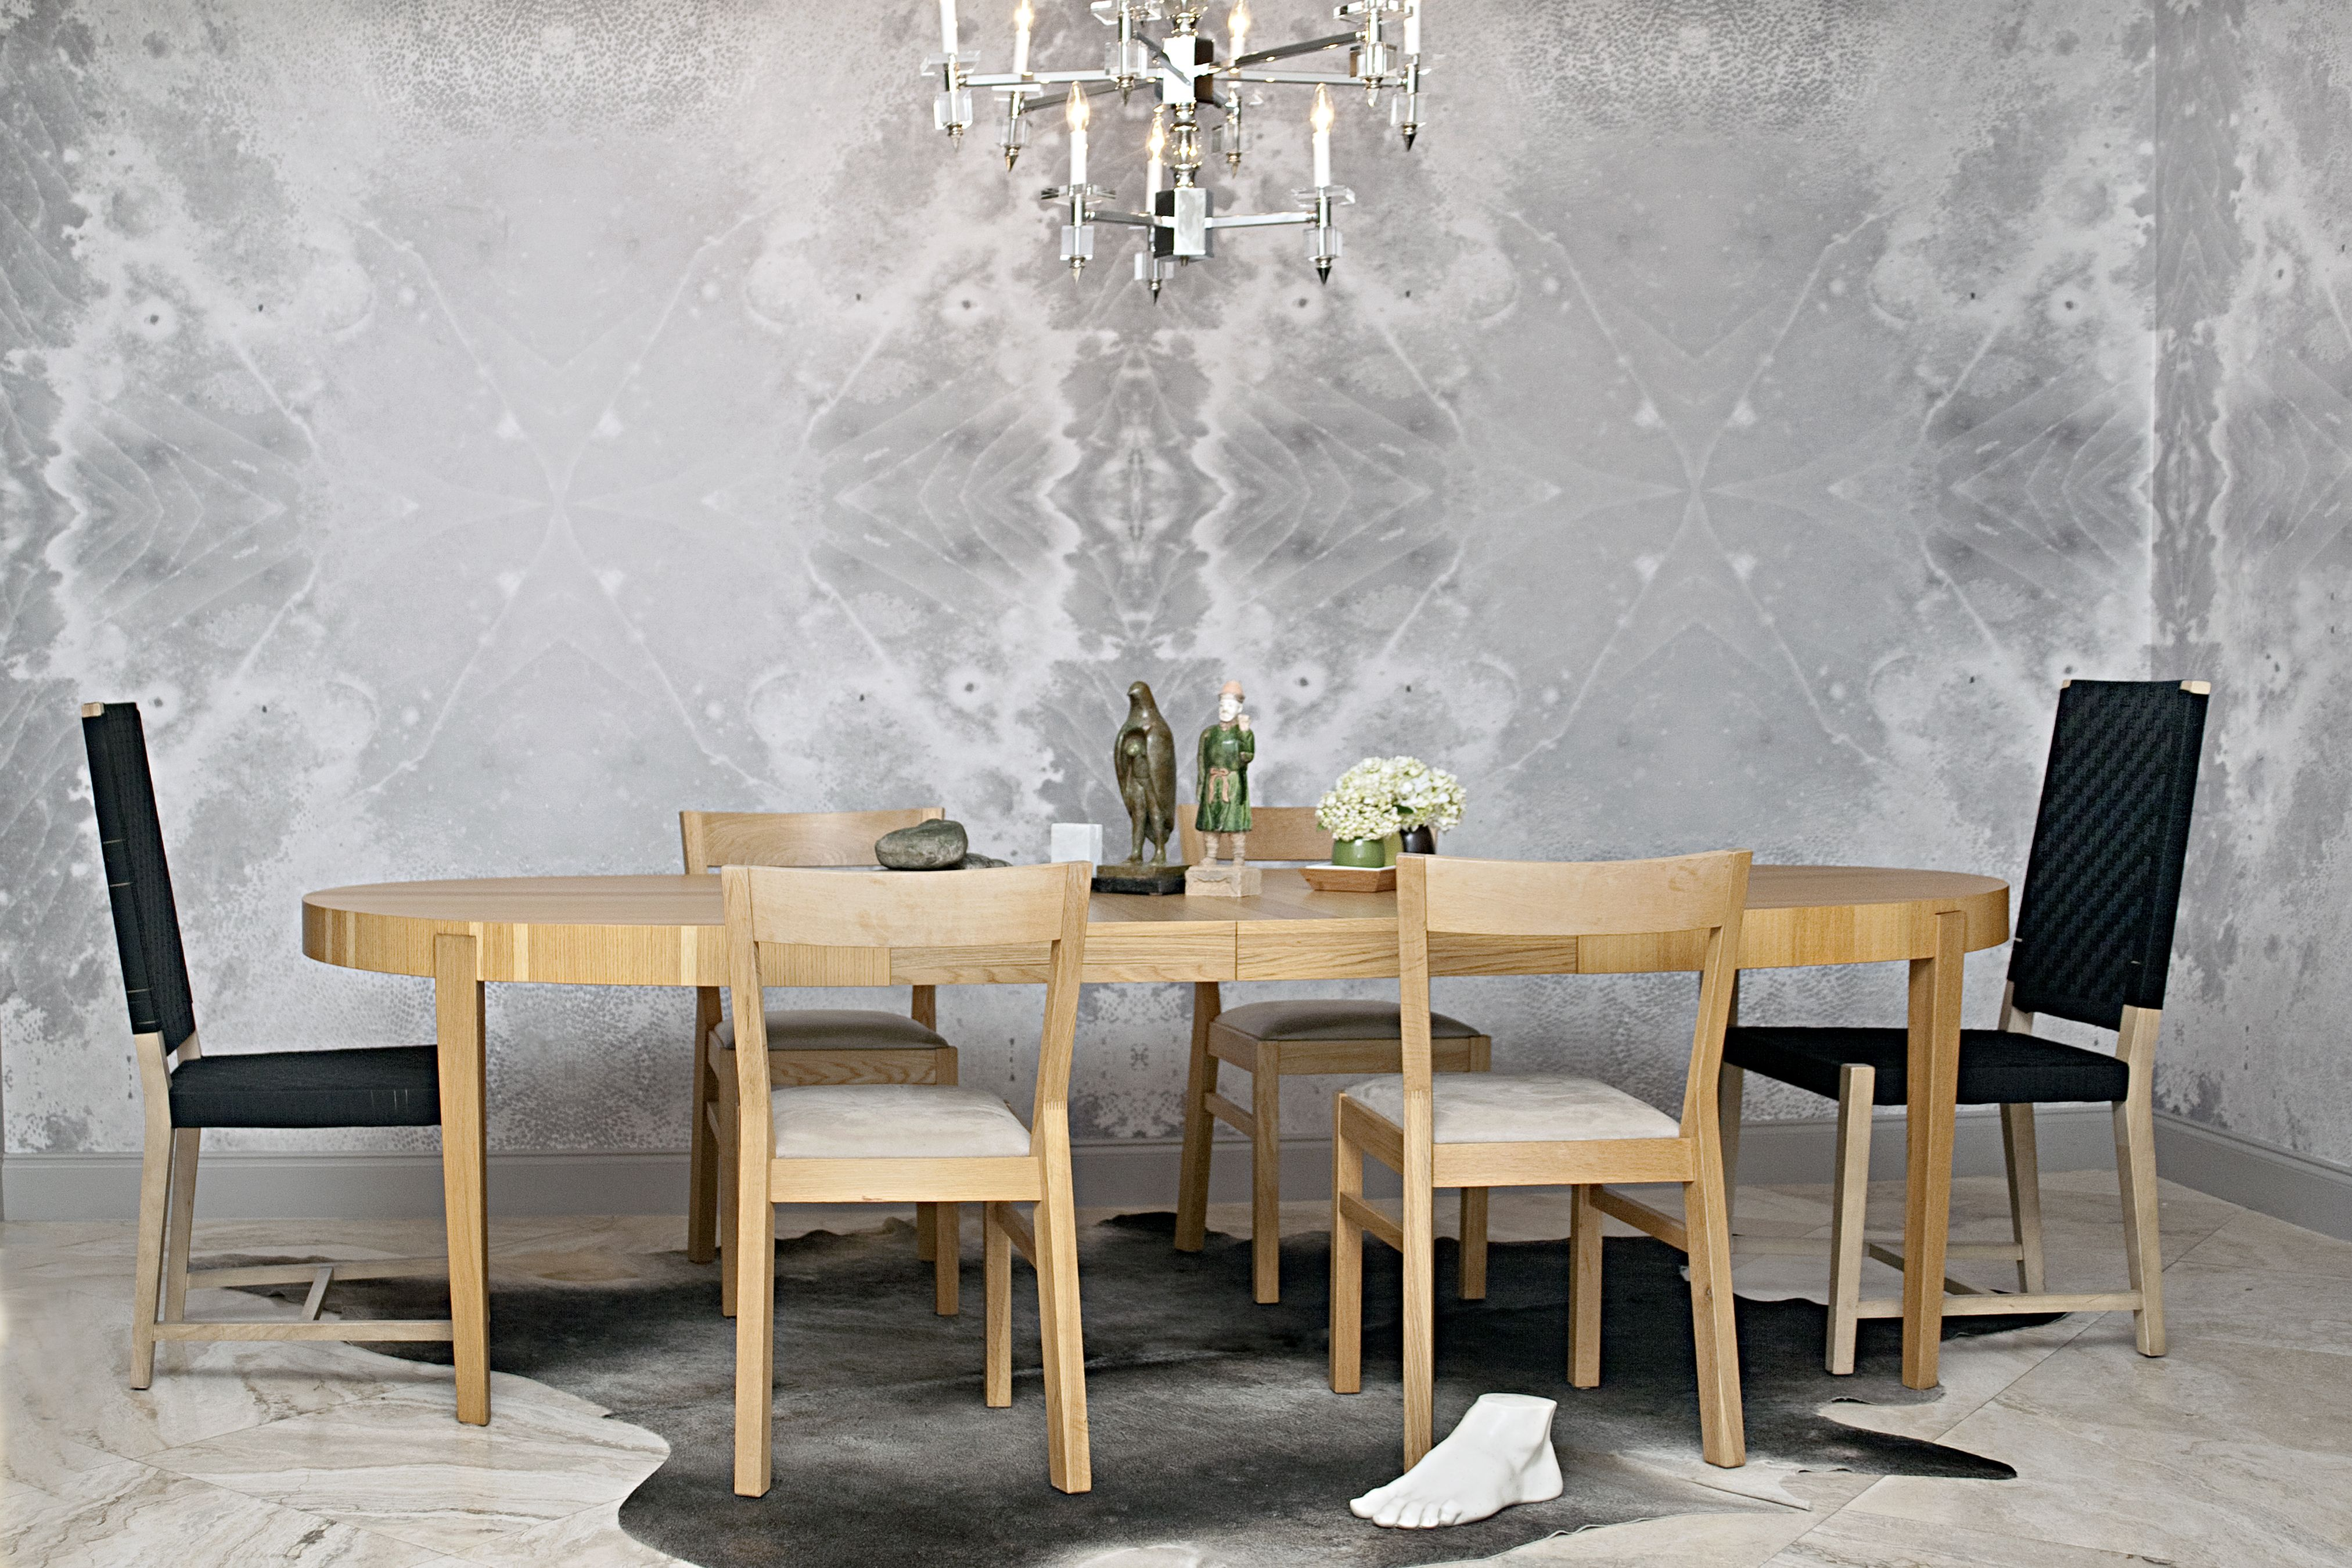 Residential Dining Room Wallcovering Installation. Serpent Shell Pattern in Grey. Extra Large Repeat